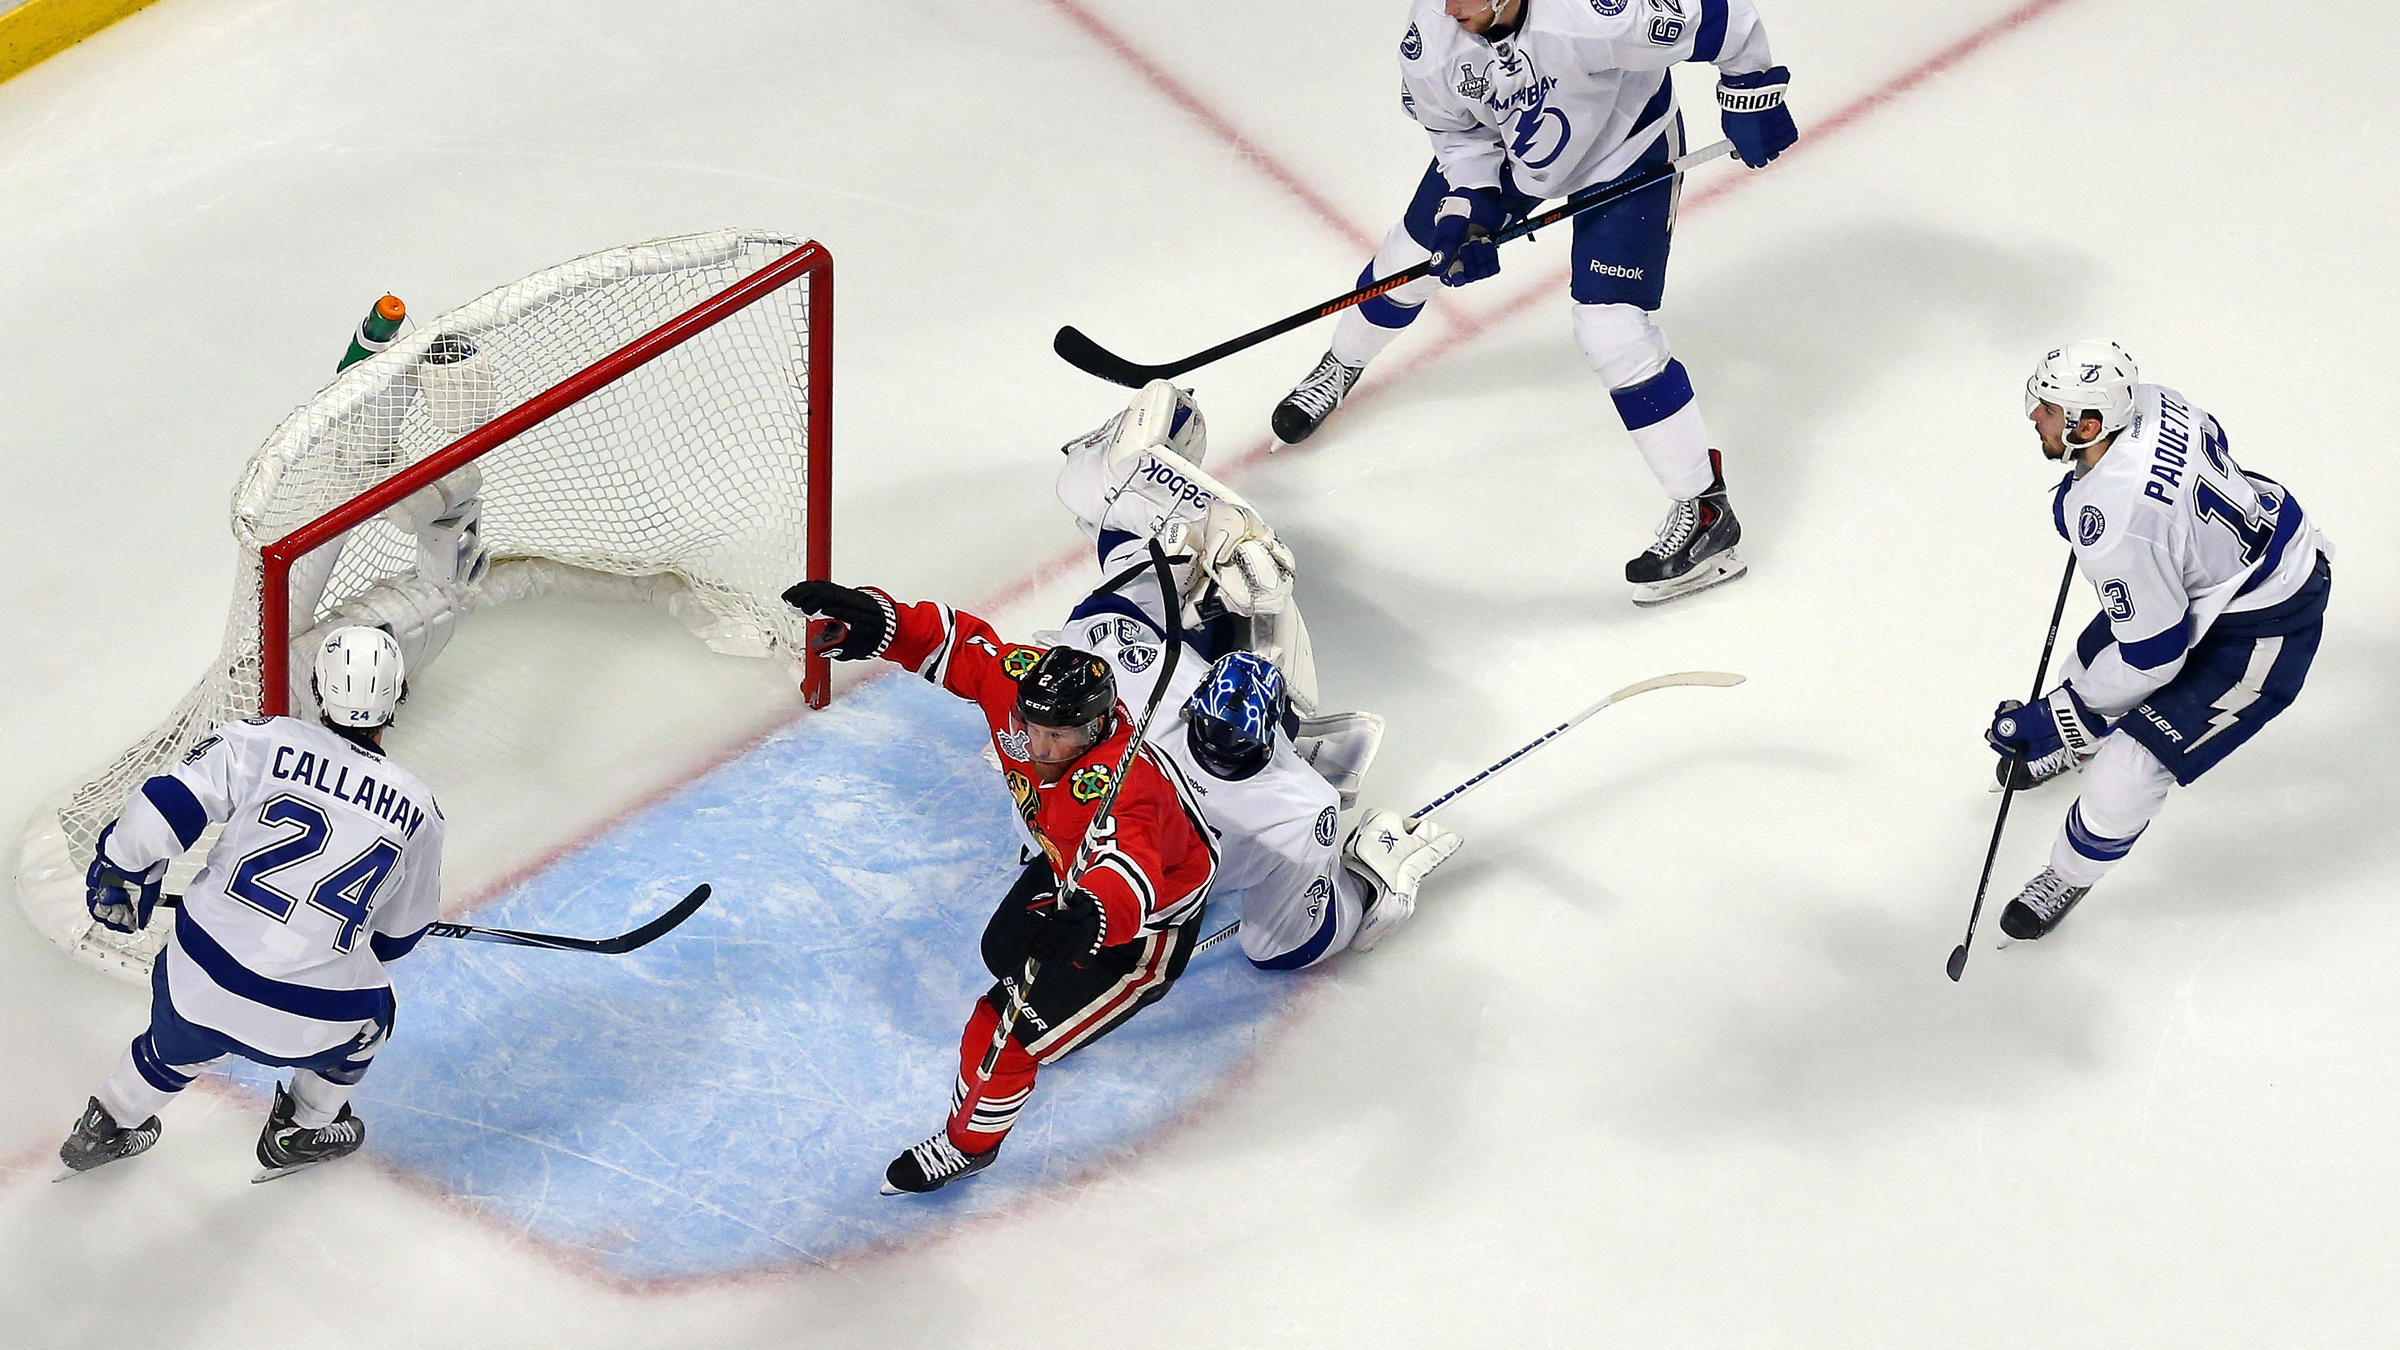 71d70278 Duncan Keith of the Chicago Blackhawks scores a goal Monday in the second  period against goalie Ben Bishop of the Tampa Bay Lightning during Game 6  of the ...